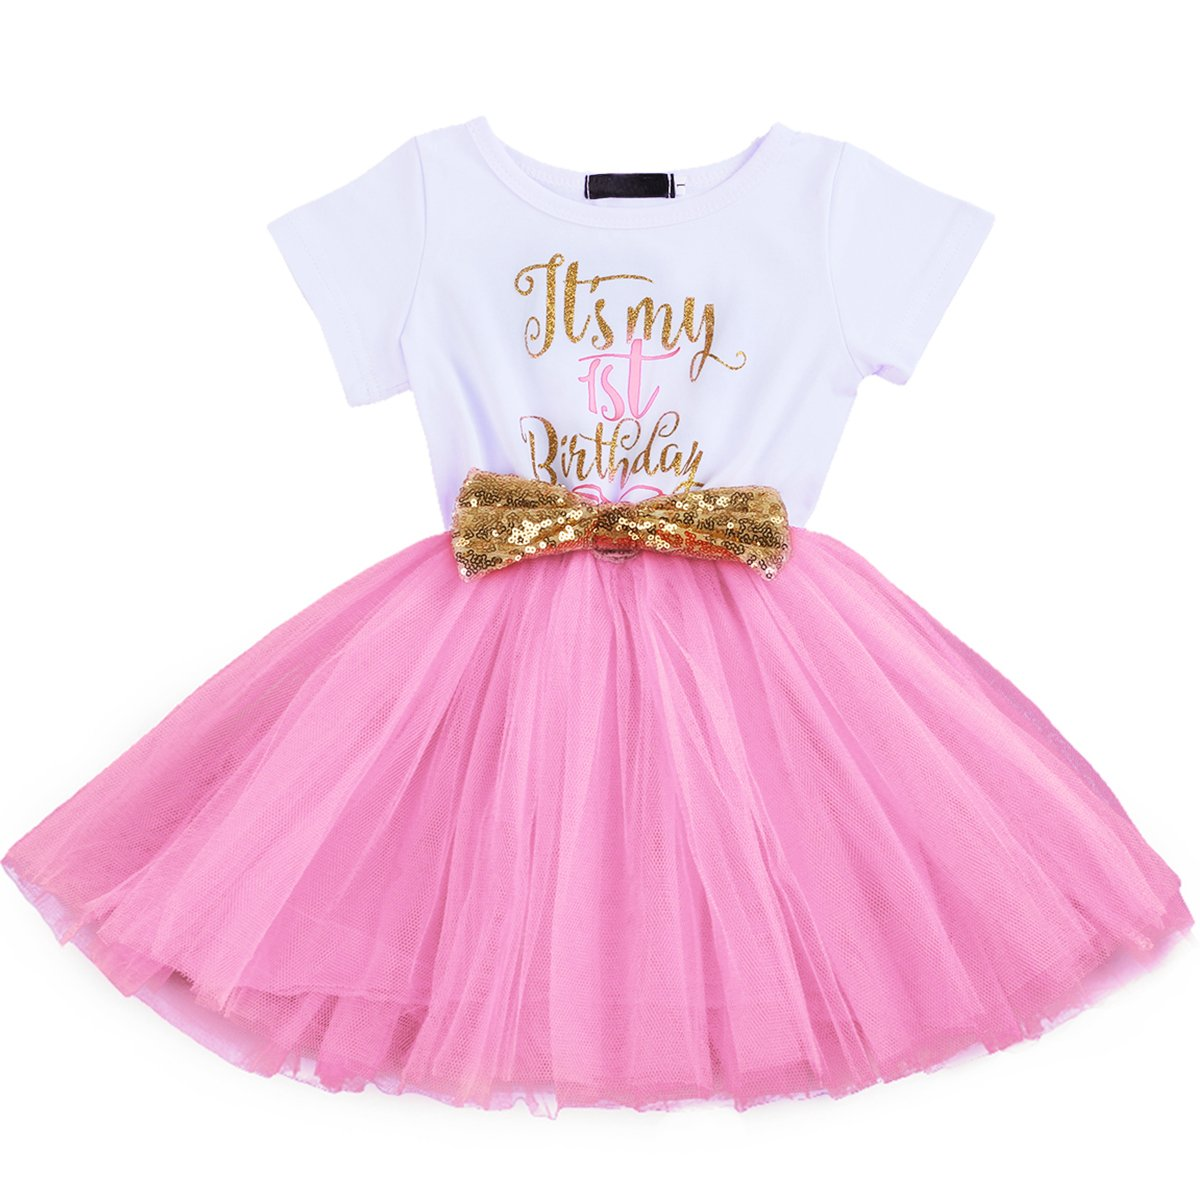 OBEEII First Second Birthday Baby Girl Tutu Dress Princess Sequin Bowknot Photo Prop